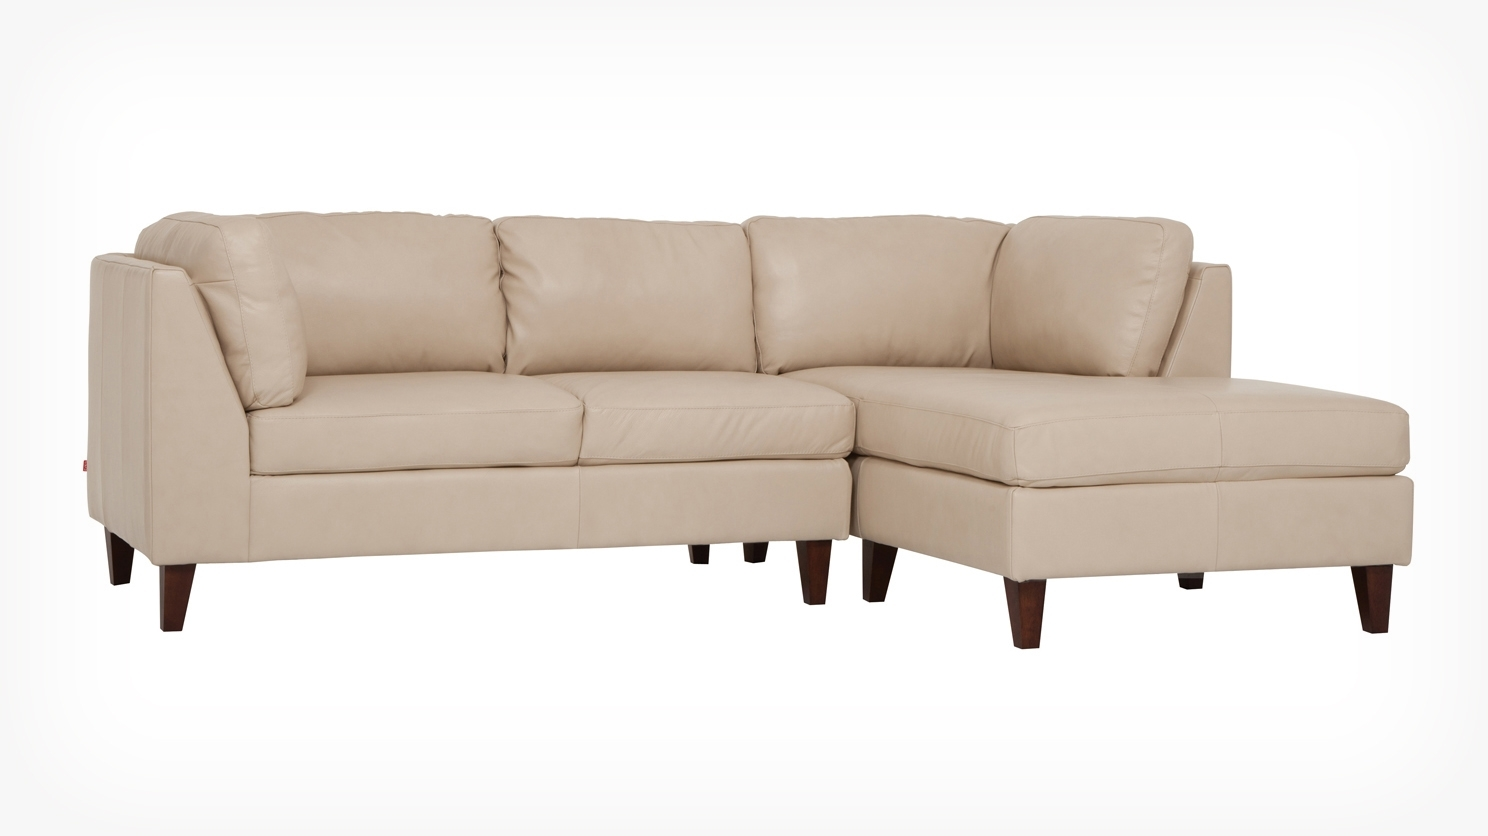 Salema 2 Piece Sectional Sofa With Chaise – Leather In Trendy Eq3 Sectional Sofas (View 14 of 15)